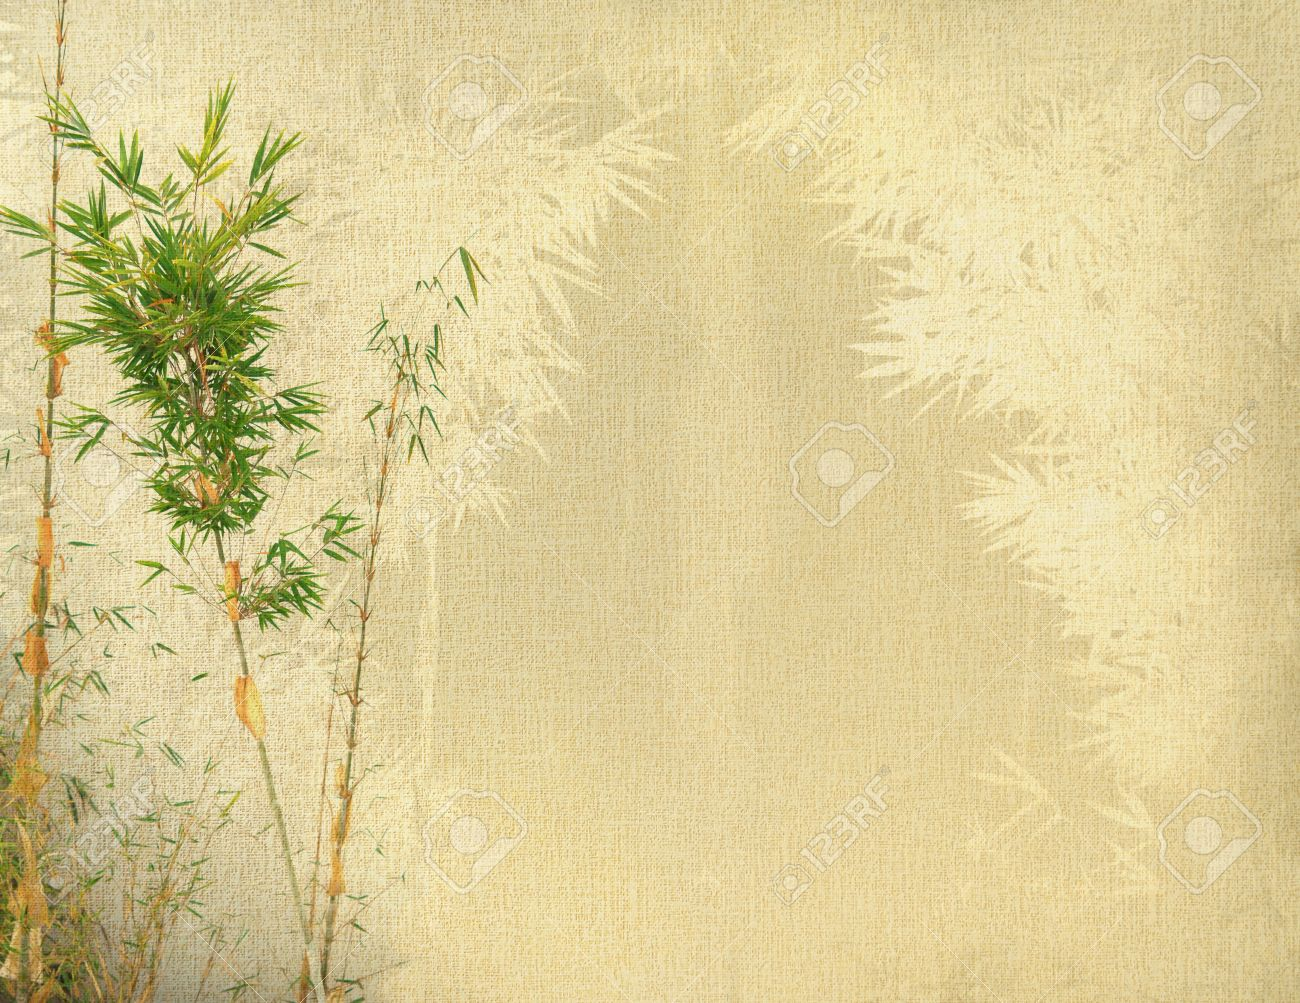 Chinese Bamboo Trees With Texture Of Handmade Paper Stock Photo ...